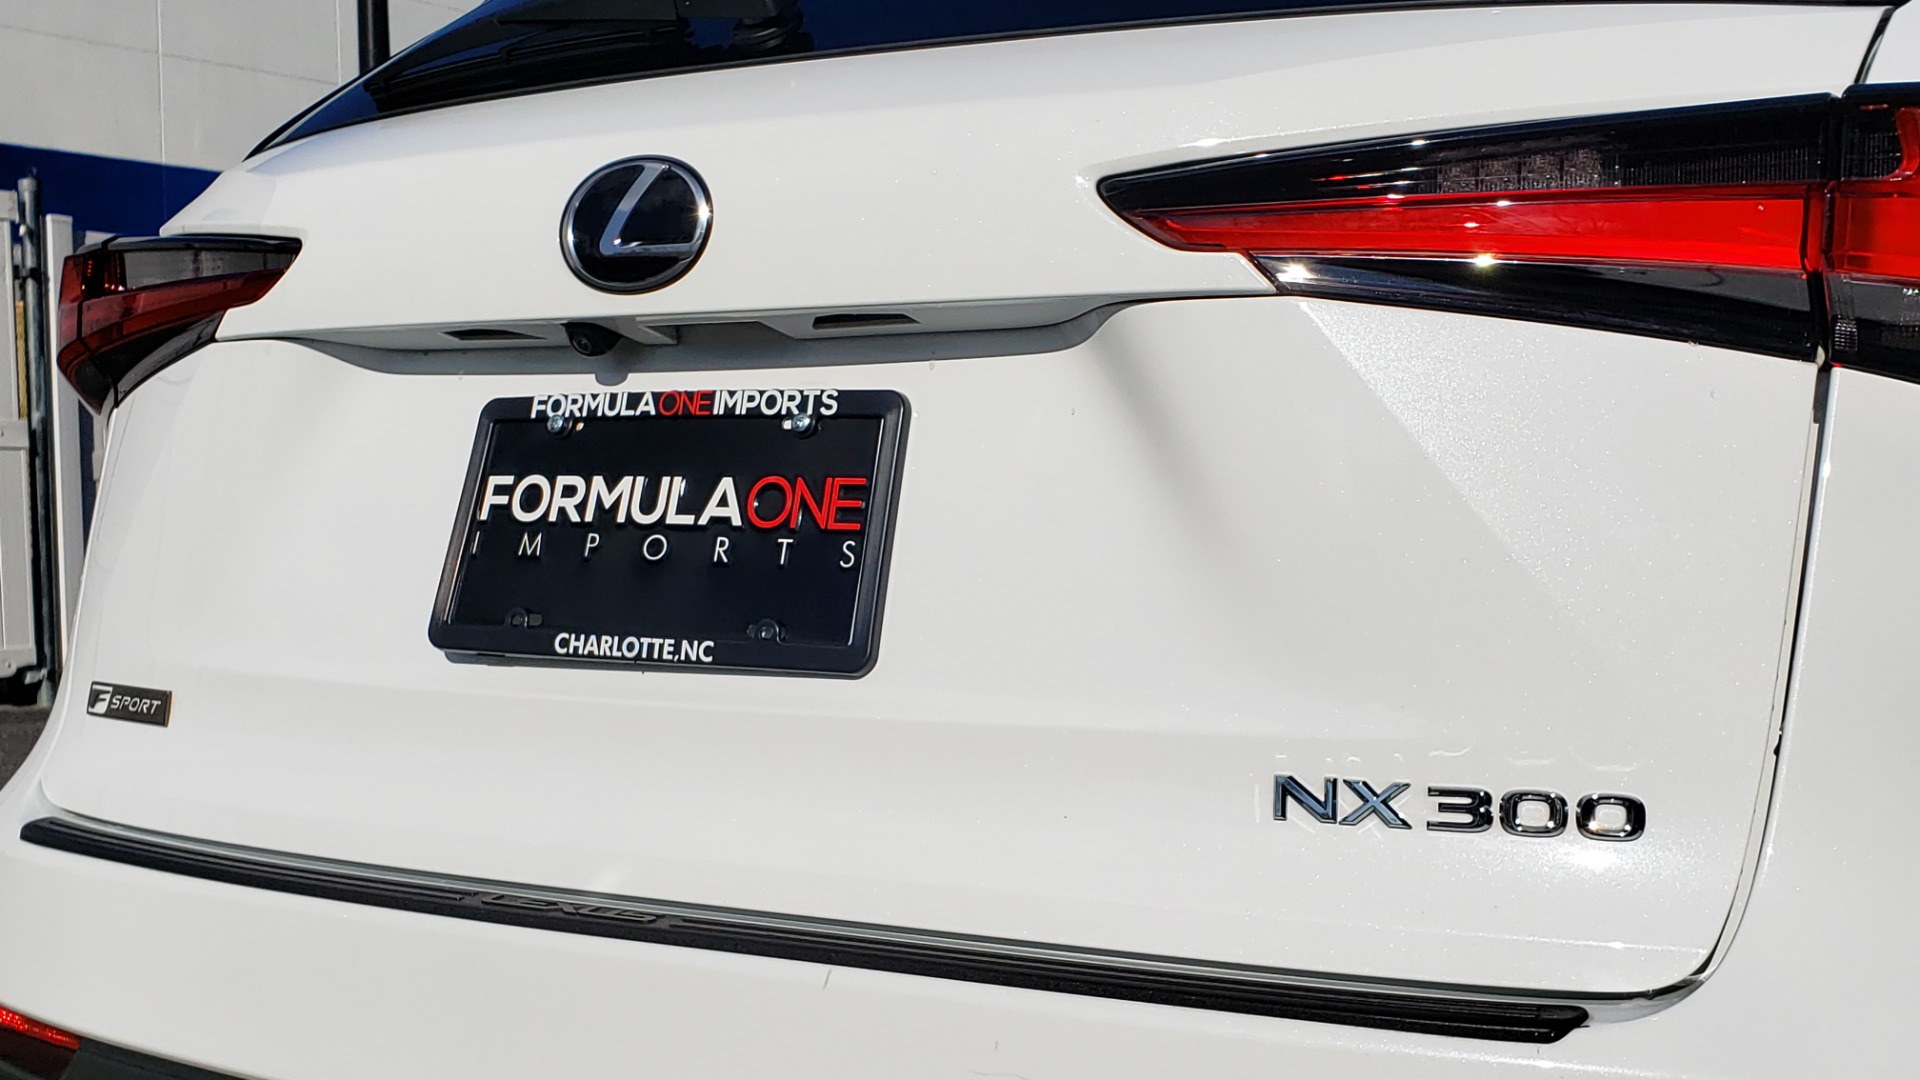 Used 2019 Lexus NX 300 F-SPORT / 2.0L TURBO / LEATHER / 18IN WHEELS / REARVIEW for sale $31,195 at Formula Imports in Charlotte NC 28227 34